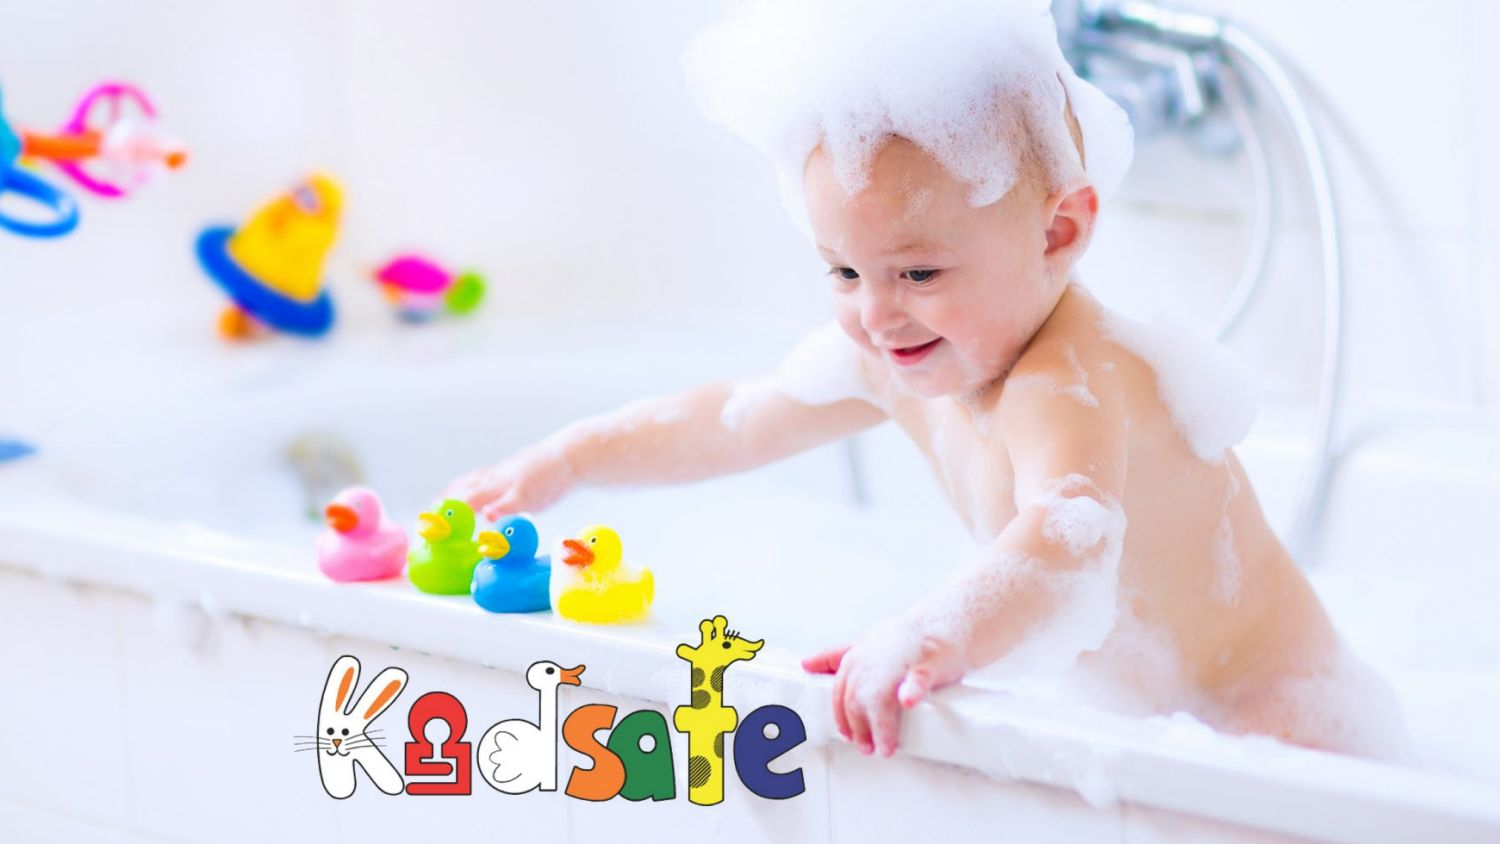 Cute little baby boy taking bath playing with foam and colorful rubber duck toys in a white sunny bathroom